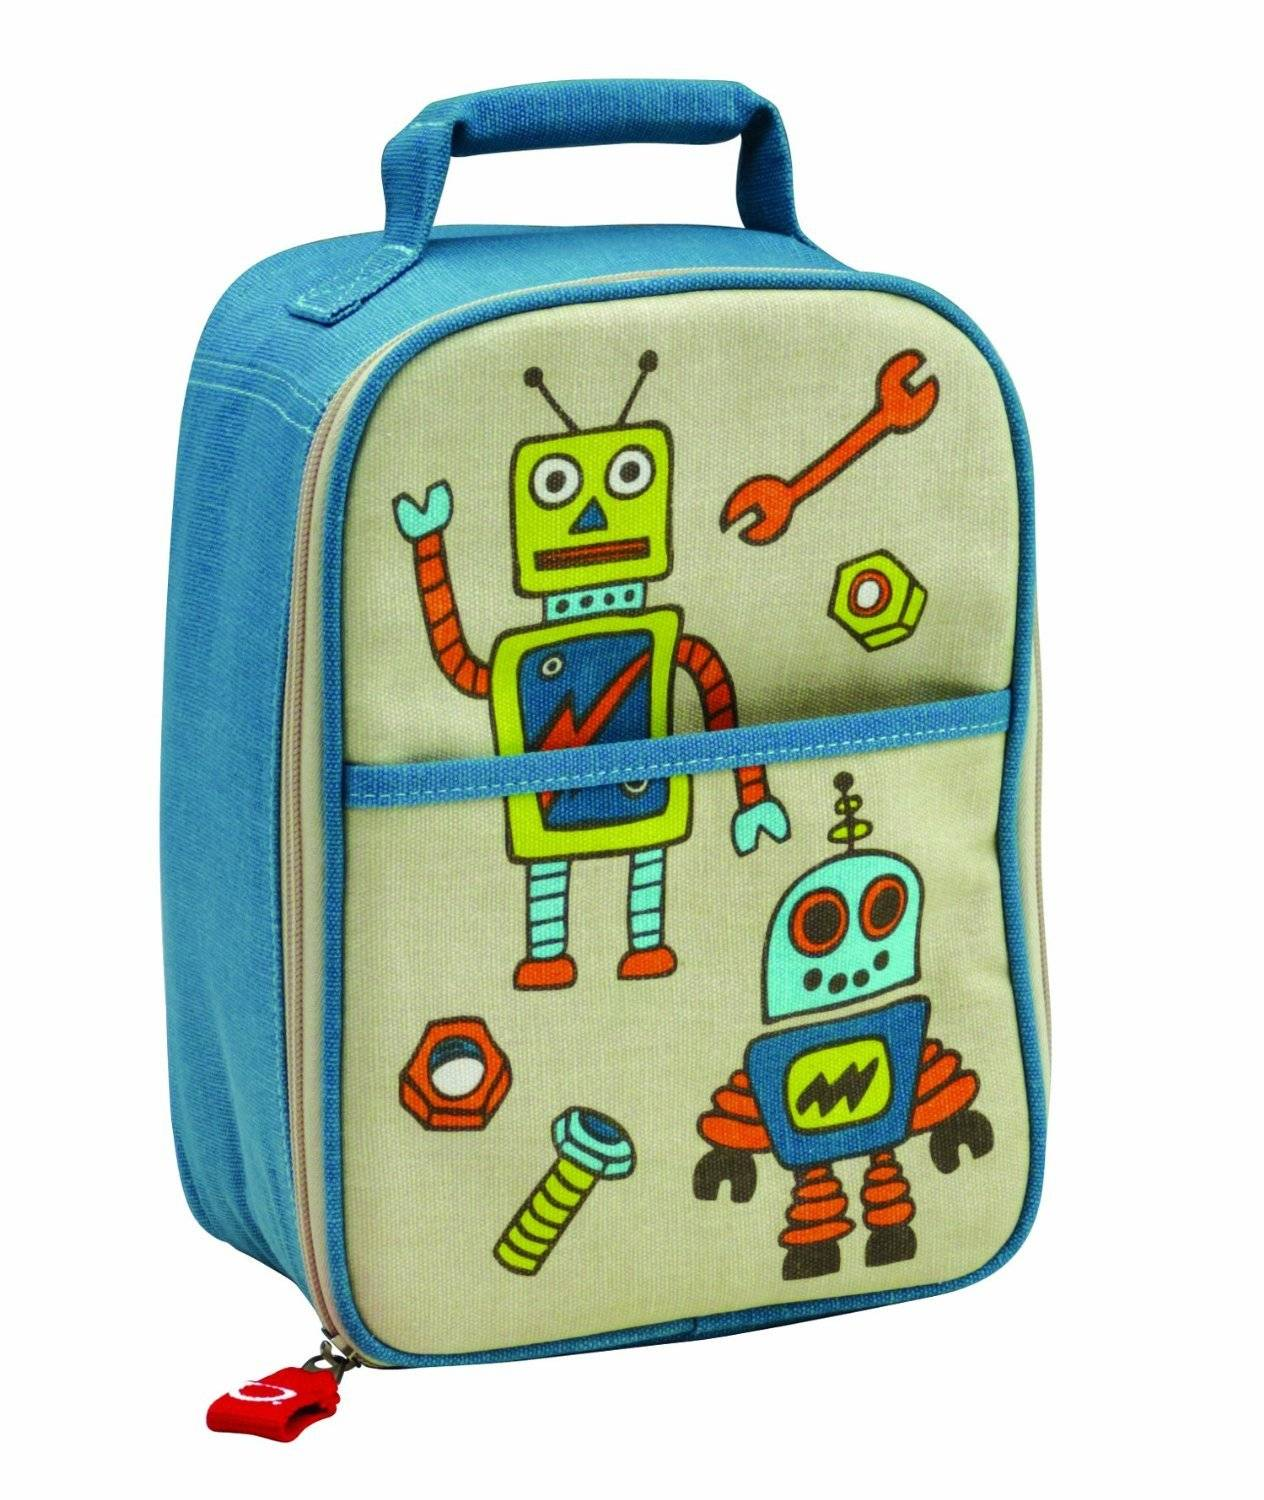 multi purpose bento lunch tote insulated bag retro robot for bent. Black Bedroom Furniture Sets. Home Design Ideas